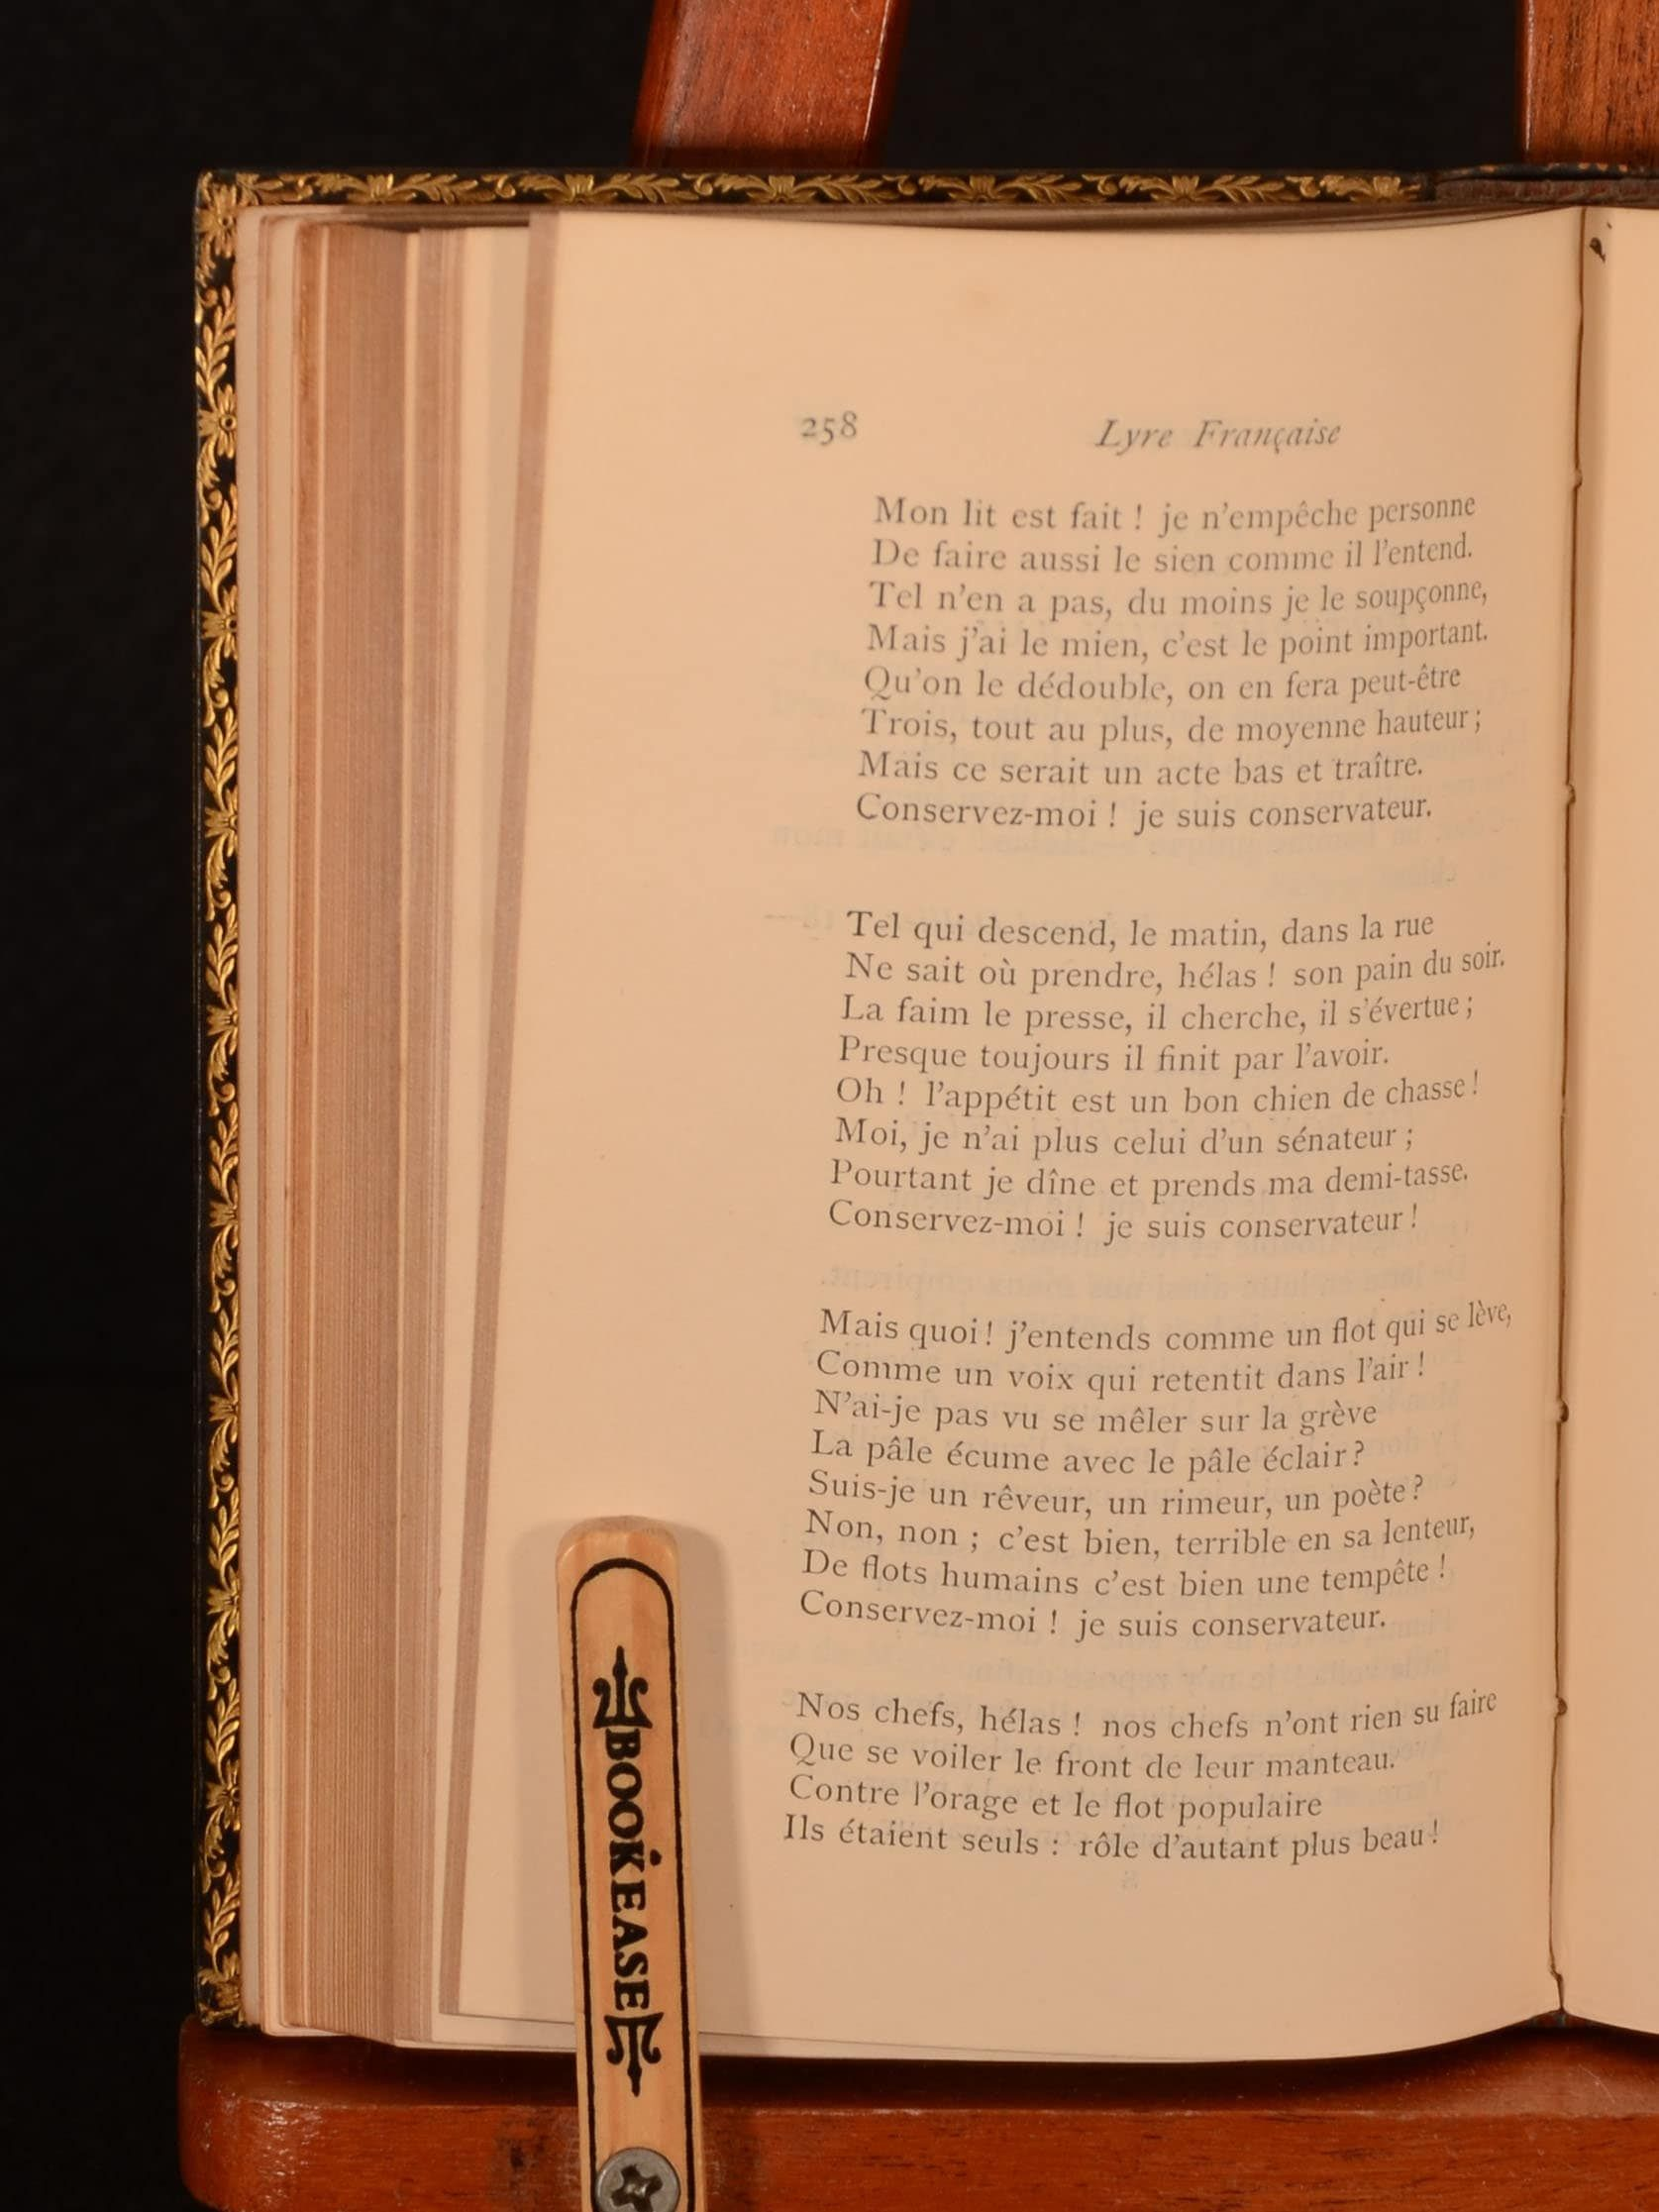 This work is a collection of French songs throughout history, documenting the history of French song. The work includes religious songs, hymns, patriotic and warlike songs, bacchanalian songs, love songs, satirical songs, and historical songs. Complied by George Gustave Masson. Masson was an educational writer who was educated in France, going on to write and translate a number of French classics, as well as writing many books on French literature and history. In a signed full calf binding by Za